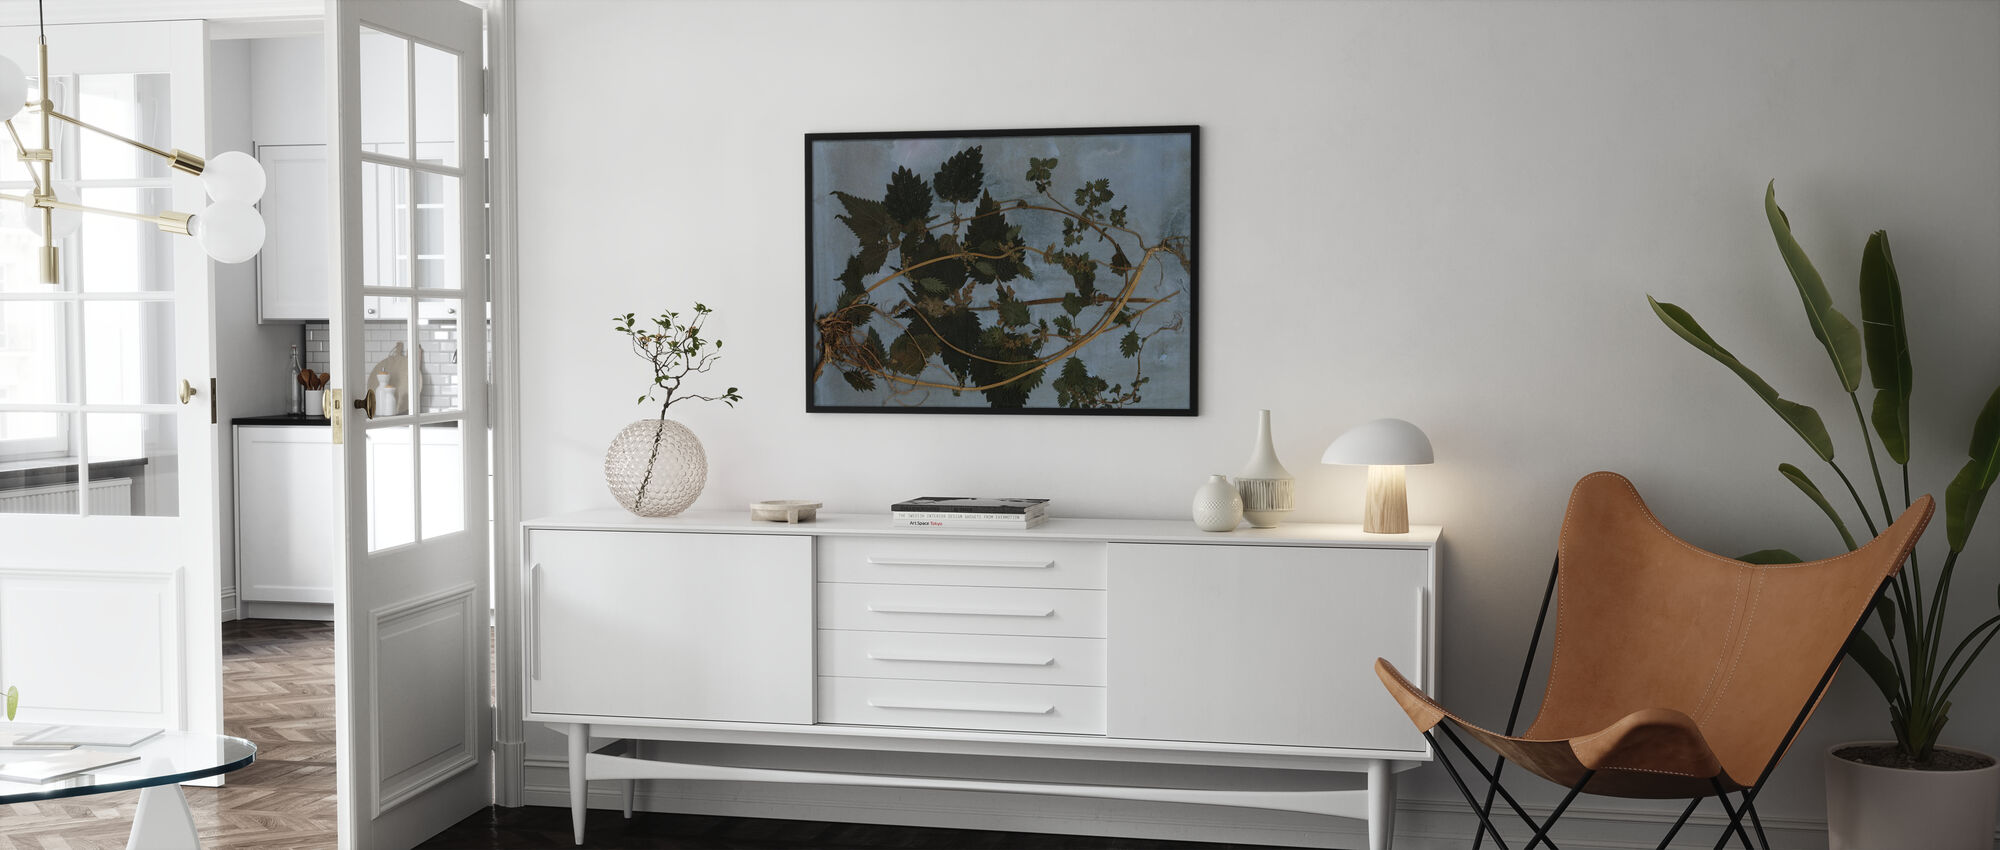 Nettles - Poster - Living Room